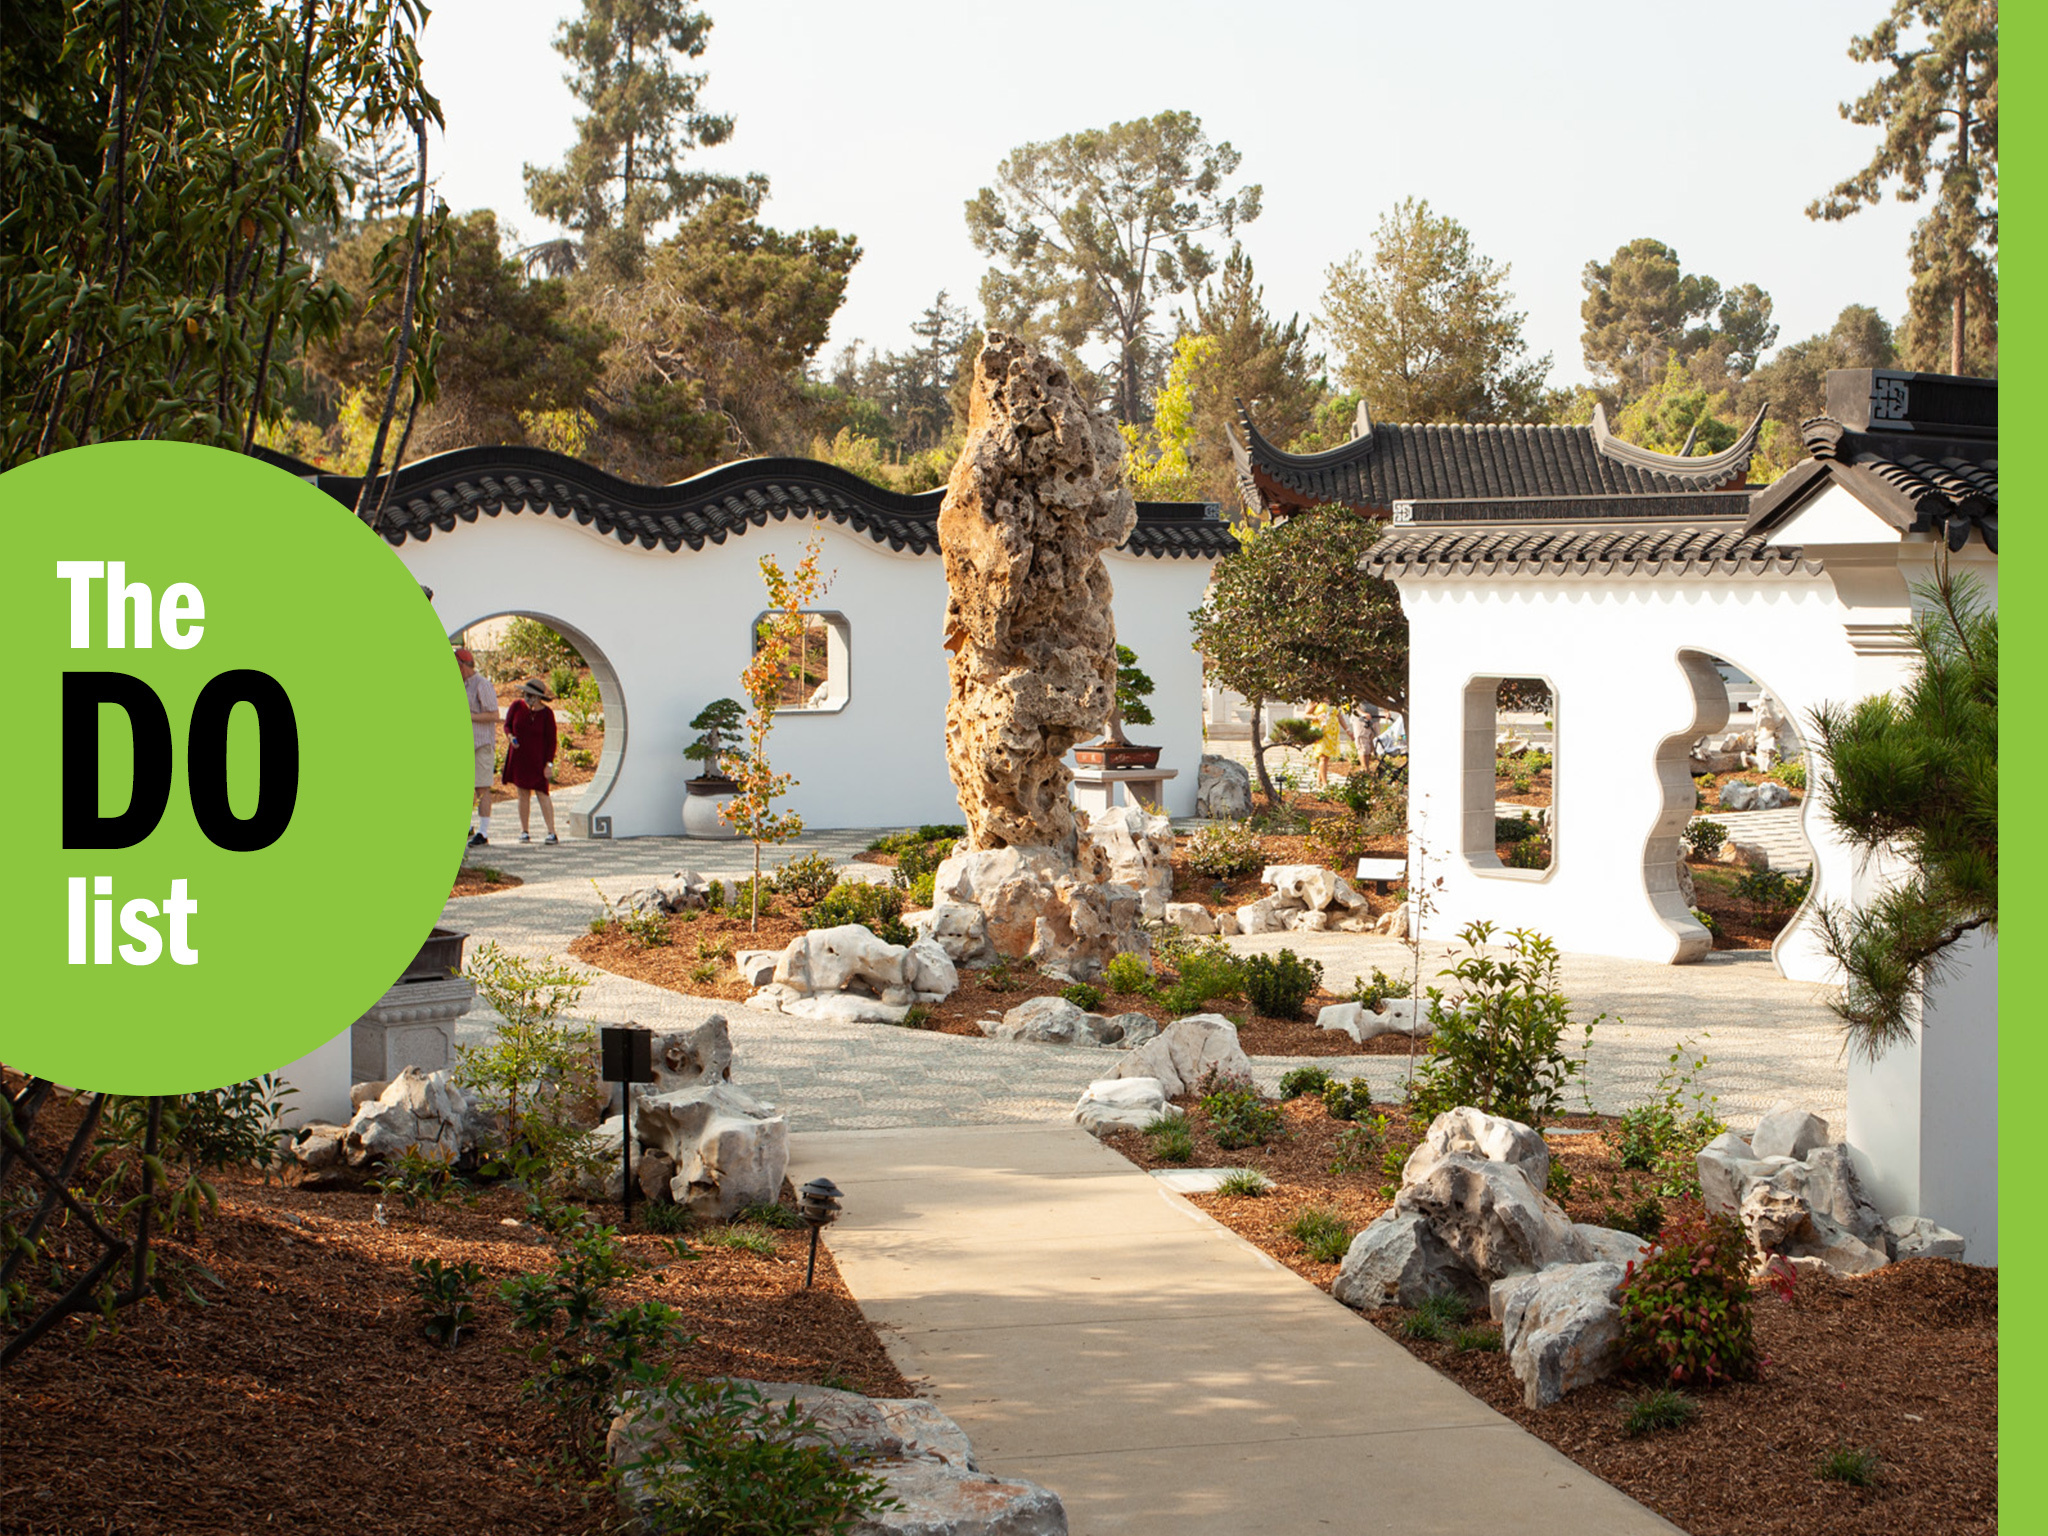 The 29 best things to do in Los Angeles